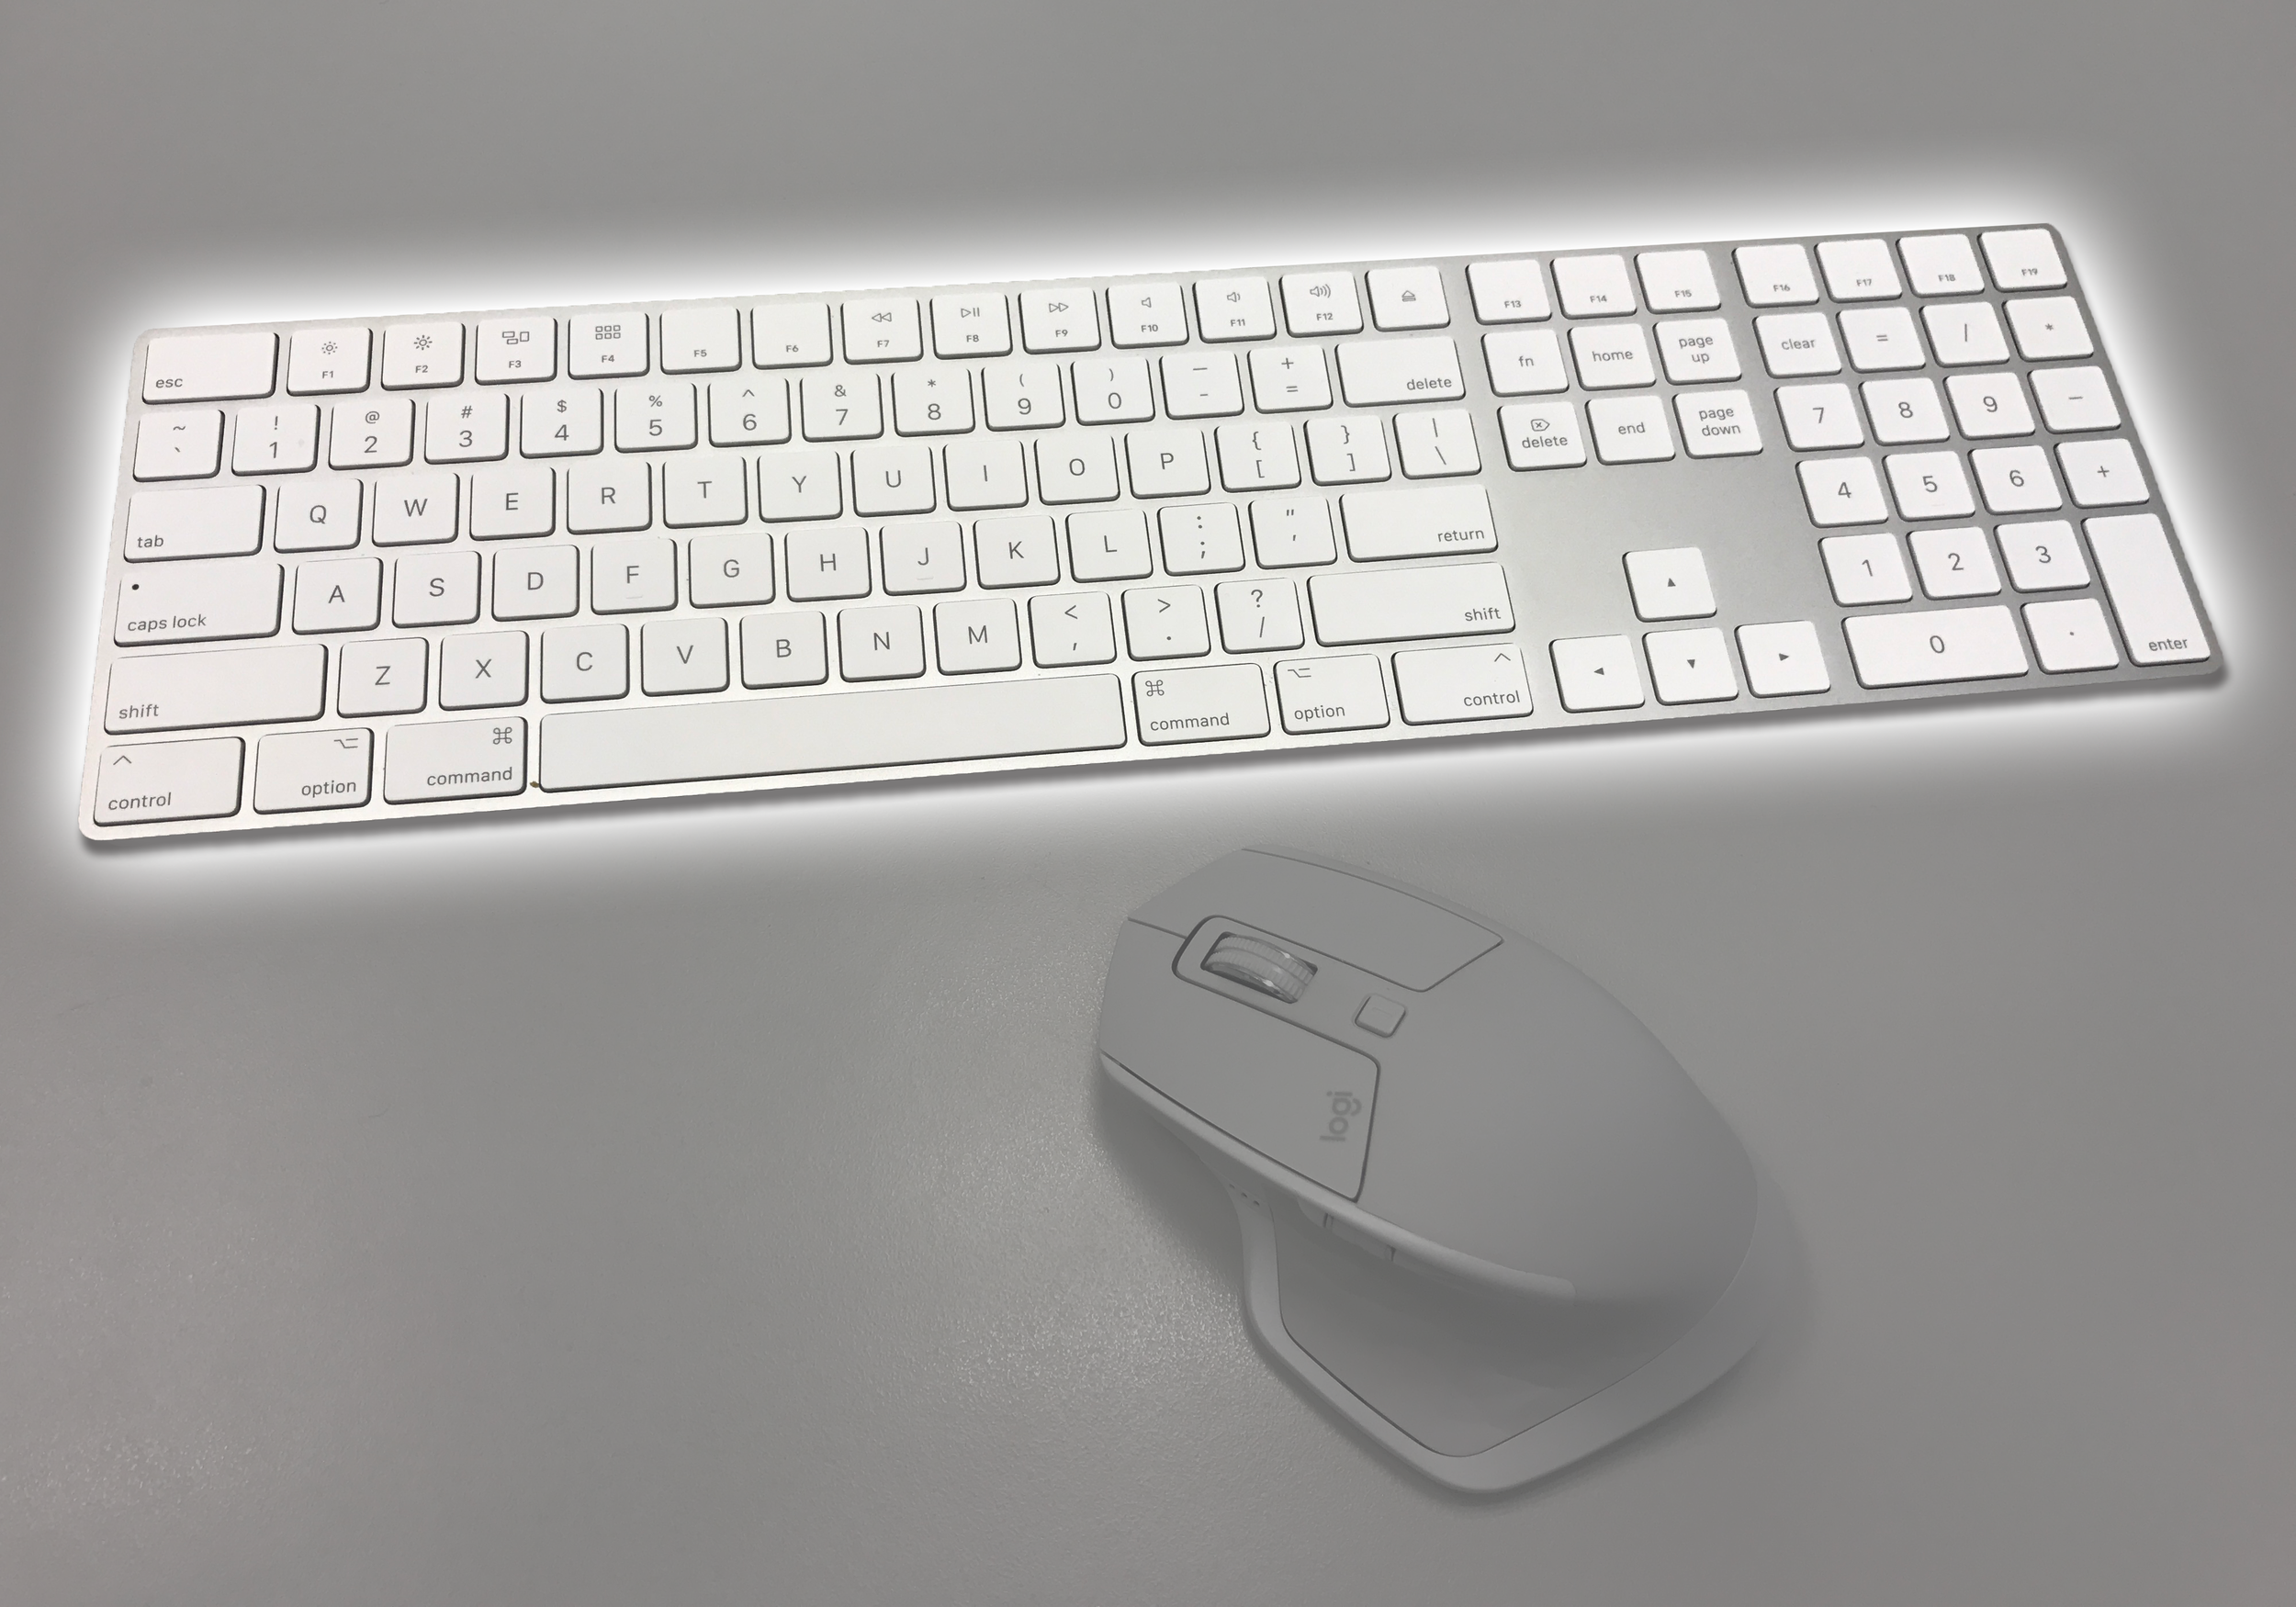 Your keyboard can be a real timesaver!